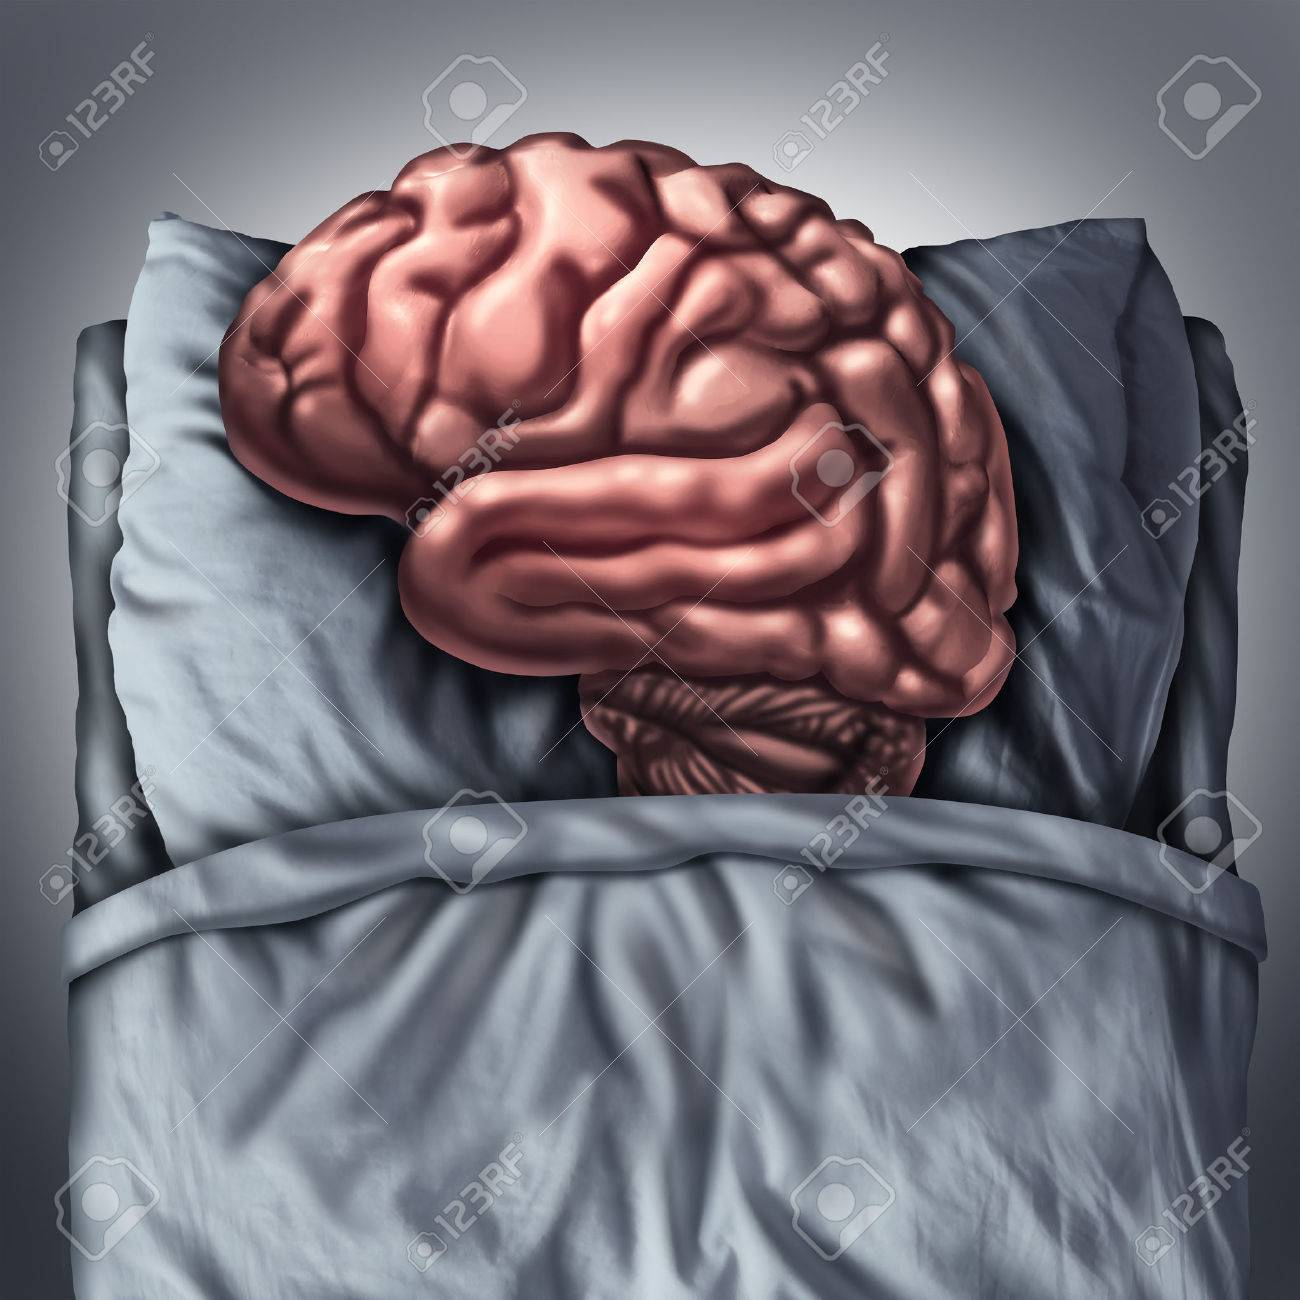 Brain sleep health care and medical concept for benefits of resting the thinking organ by sleeping on a pillow in a bed as a cognitive and neurological metaphor for meditation and deep thought therapy. - 50924012